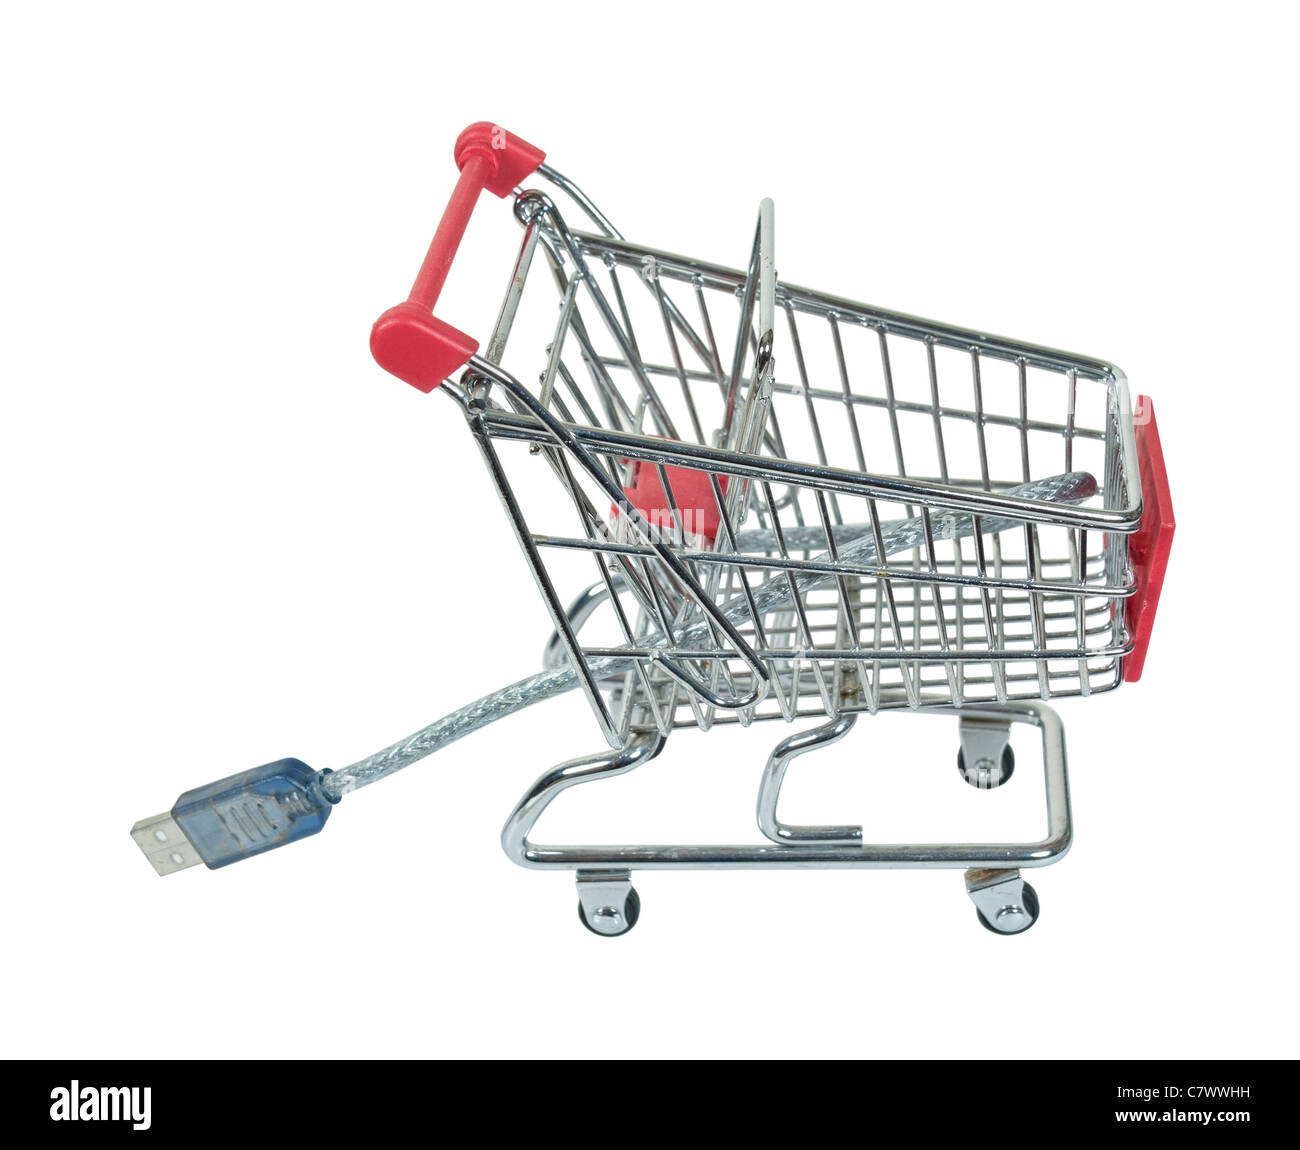 Online shopping cart with a USB cable to make shopping convenient from your computer - path included - Stock Image